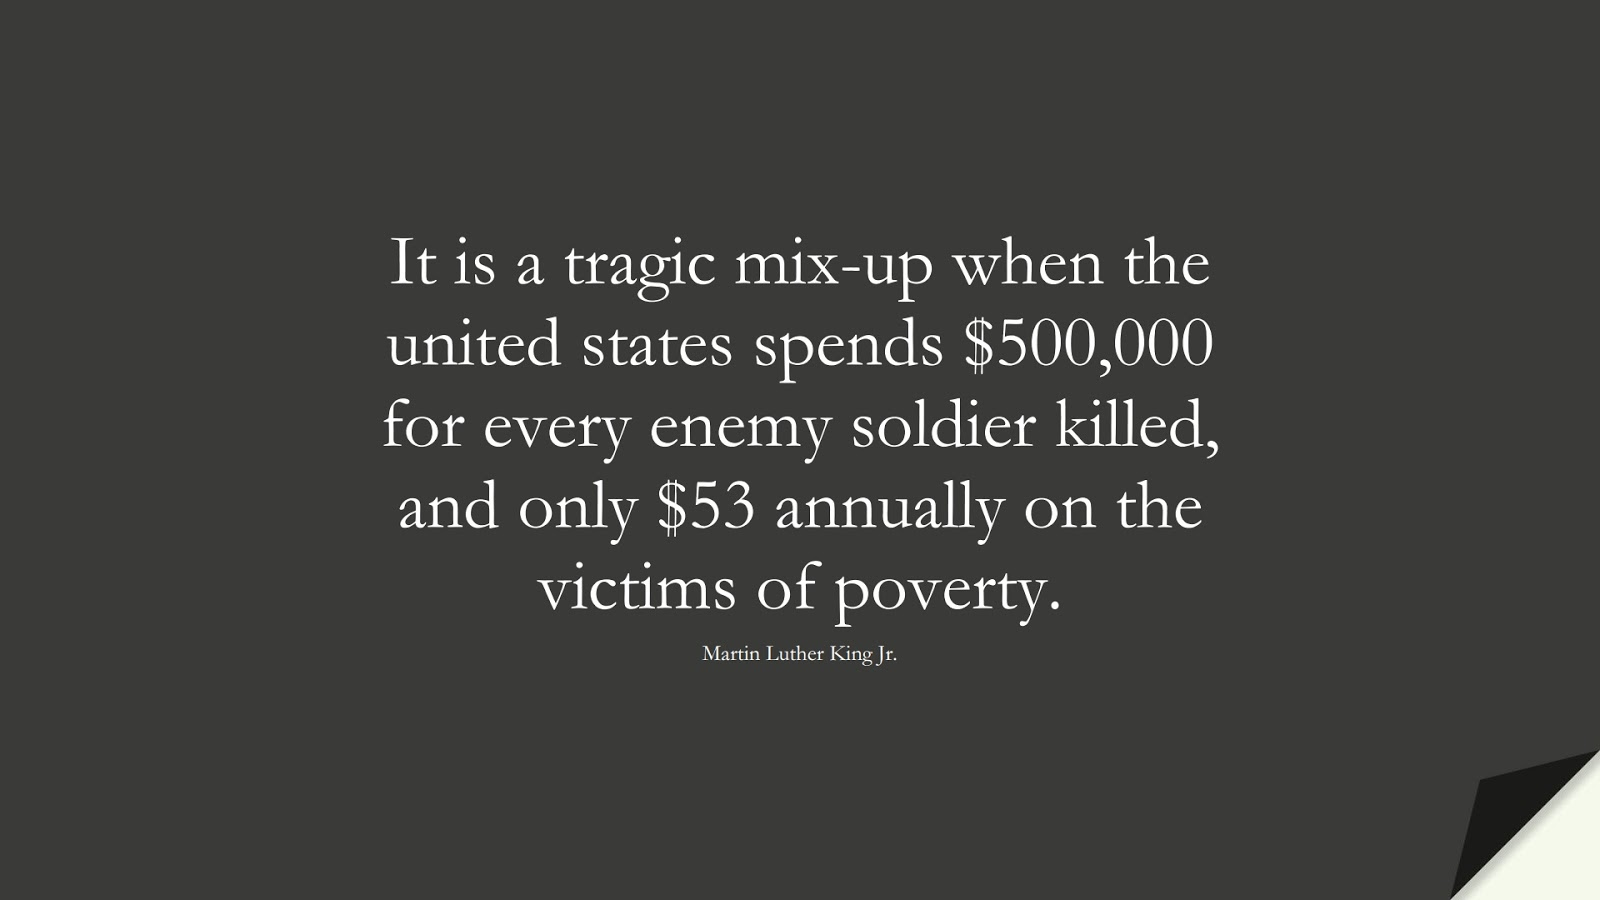 It is a tragic mix-up when the united states spends $500,000 for every enemy soldier killed, and only $53 annually on the victims of poverty. (Martin Luther King Jr.);  #MartinLutherKingJrQuotes